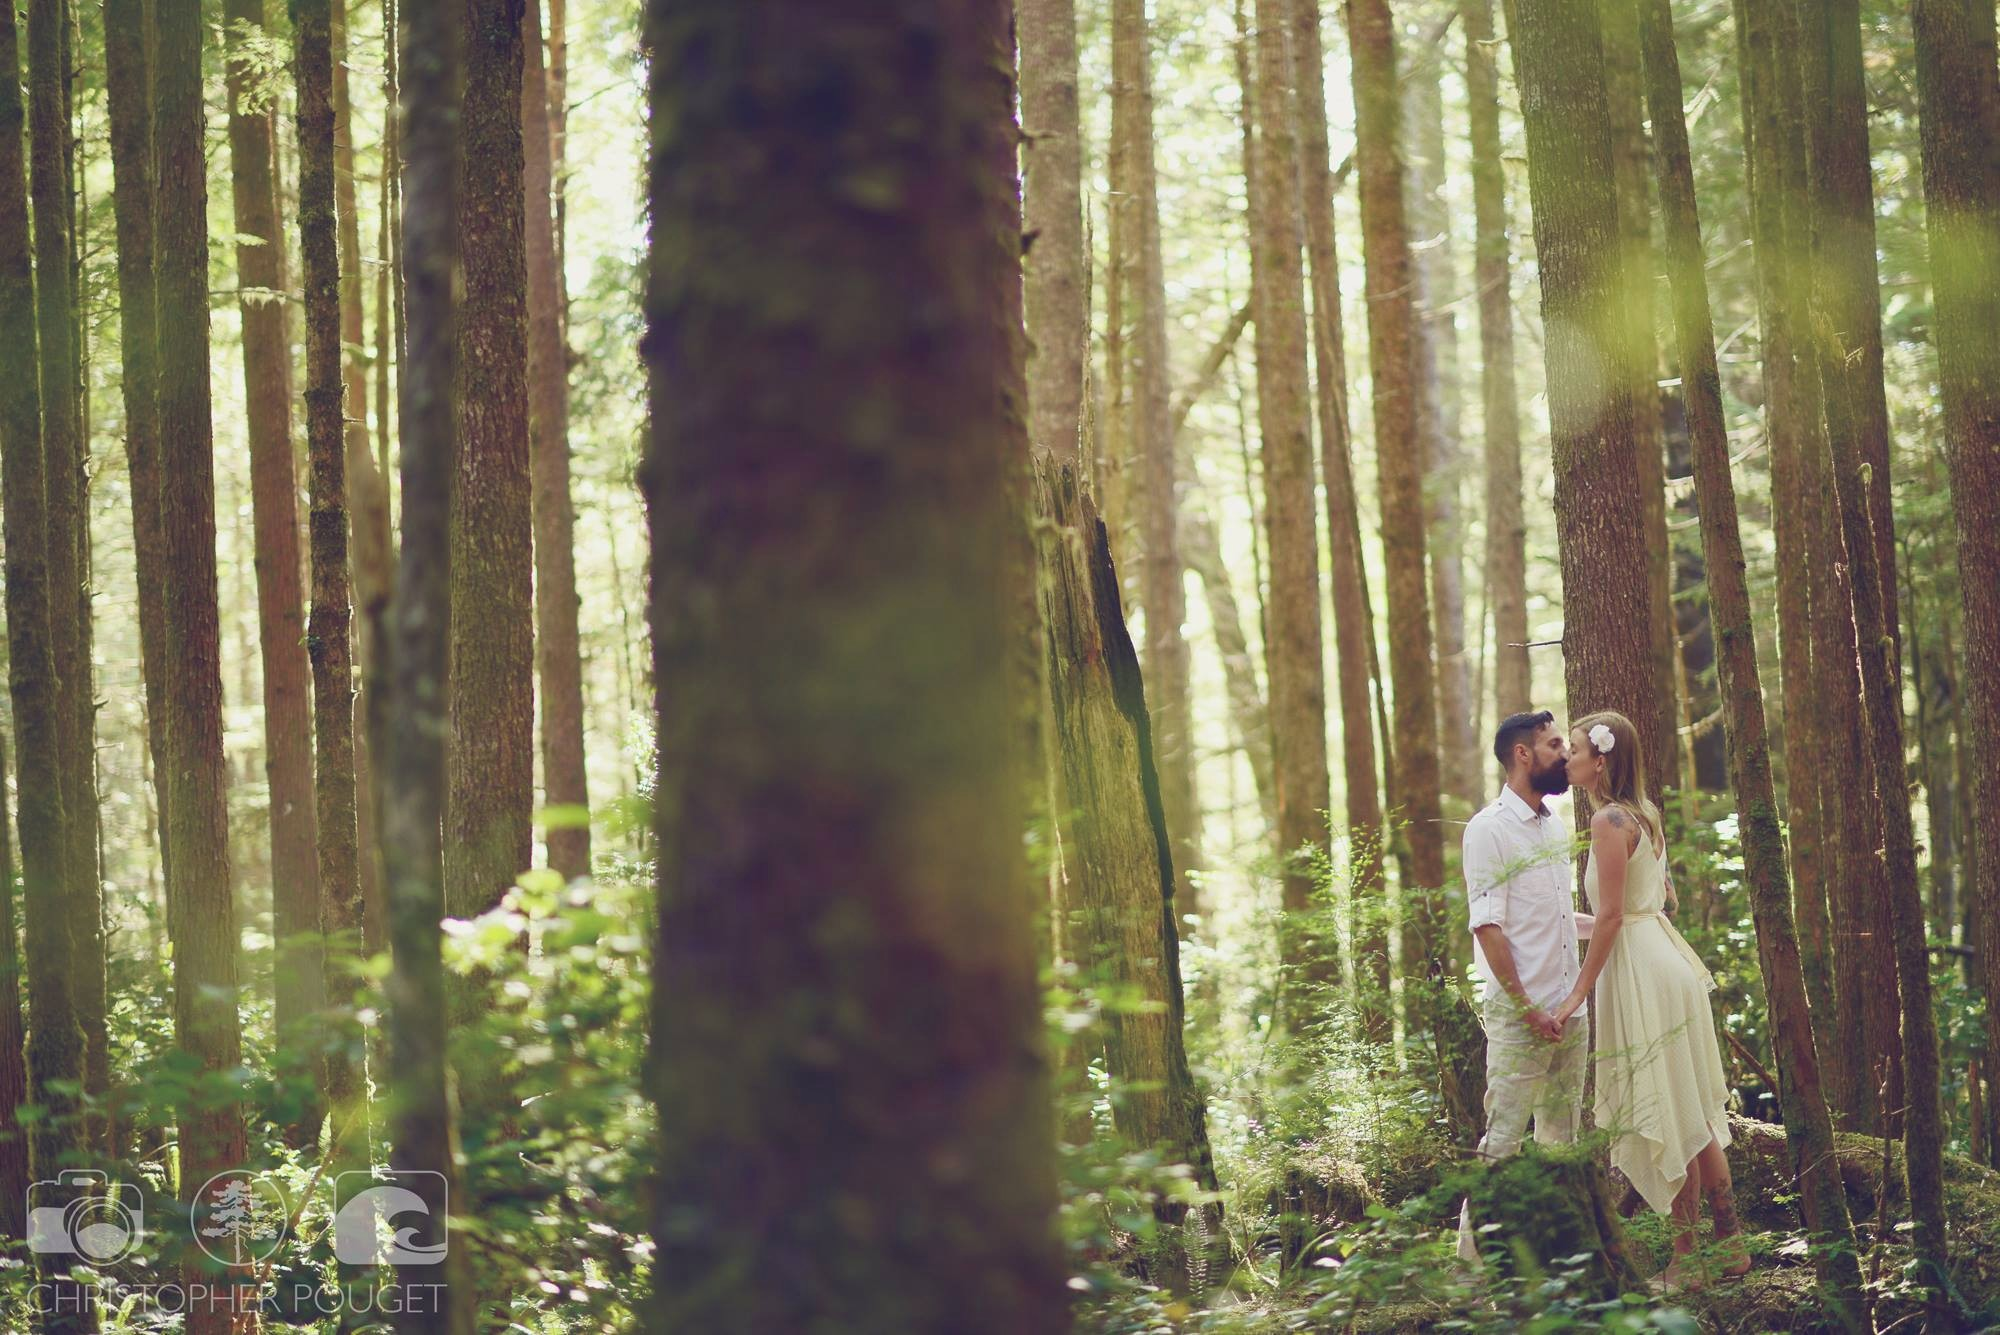 Chris Pouget Photography_Forest Bride and Groom